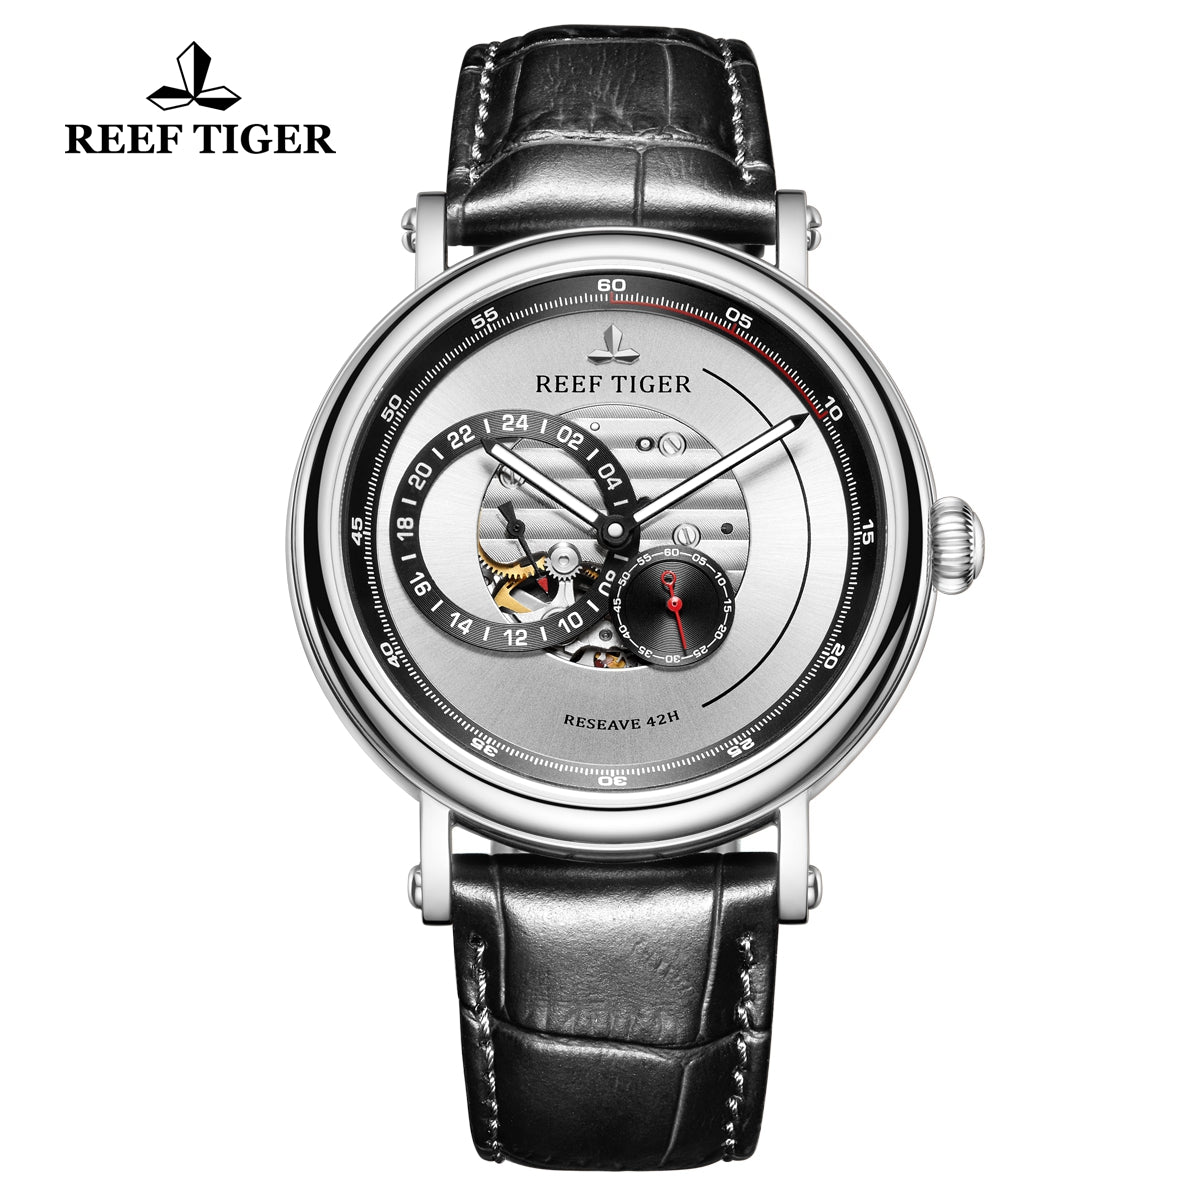 Reef Tiger Seattle Reserve Fashion Men Steel White Dial Leather Strap Automatic Watches RGA1617